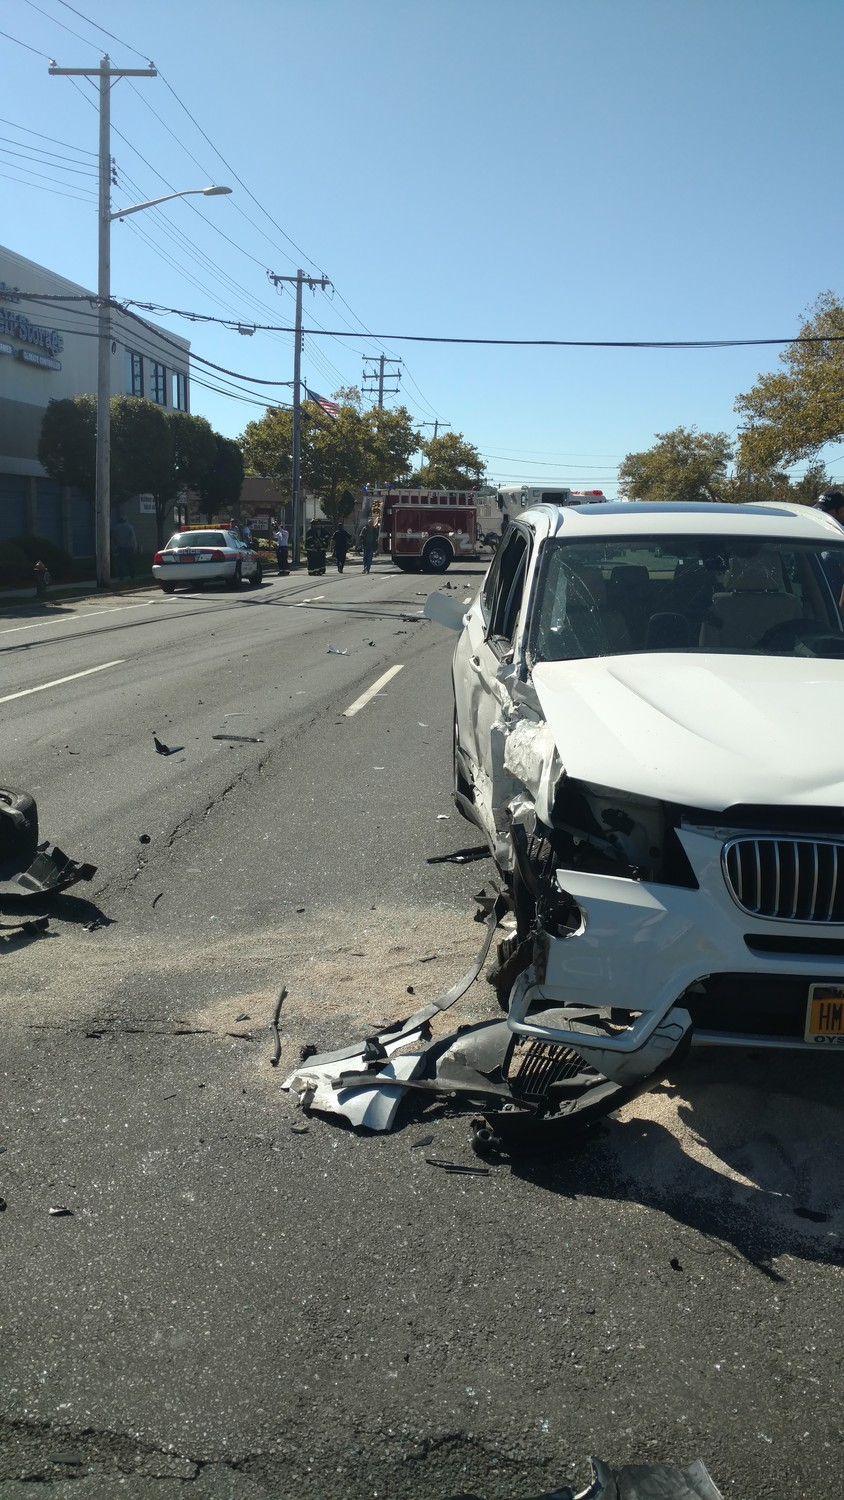 A Mercedes SUV reportedly struck three vehicles the morning of Oct. 3 on Austin Boulevard in Island Park.